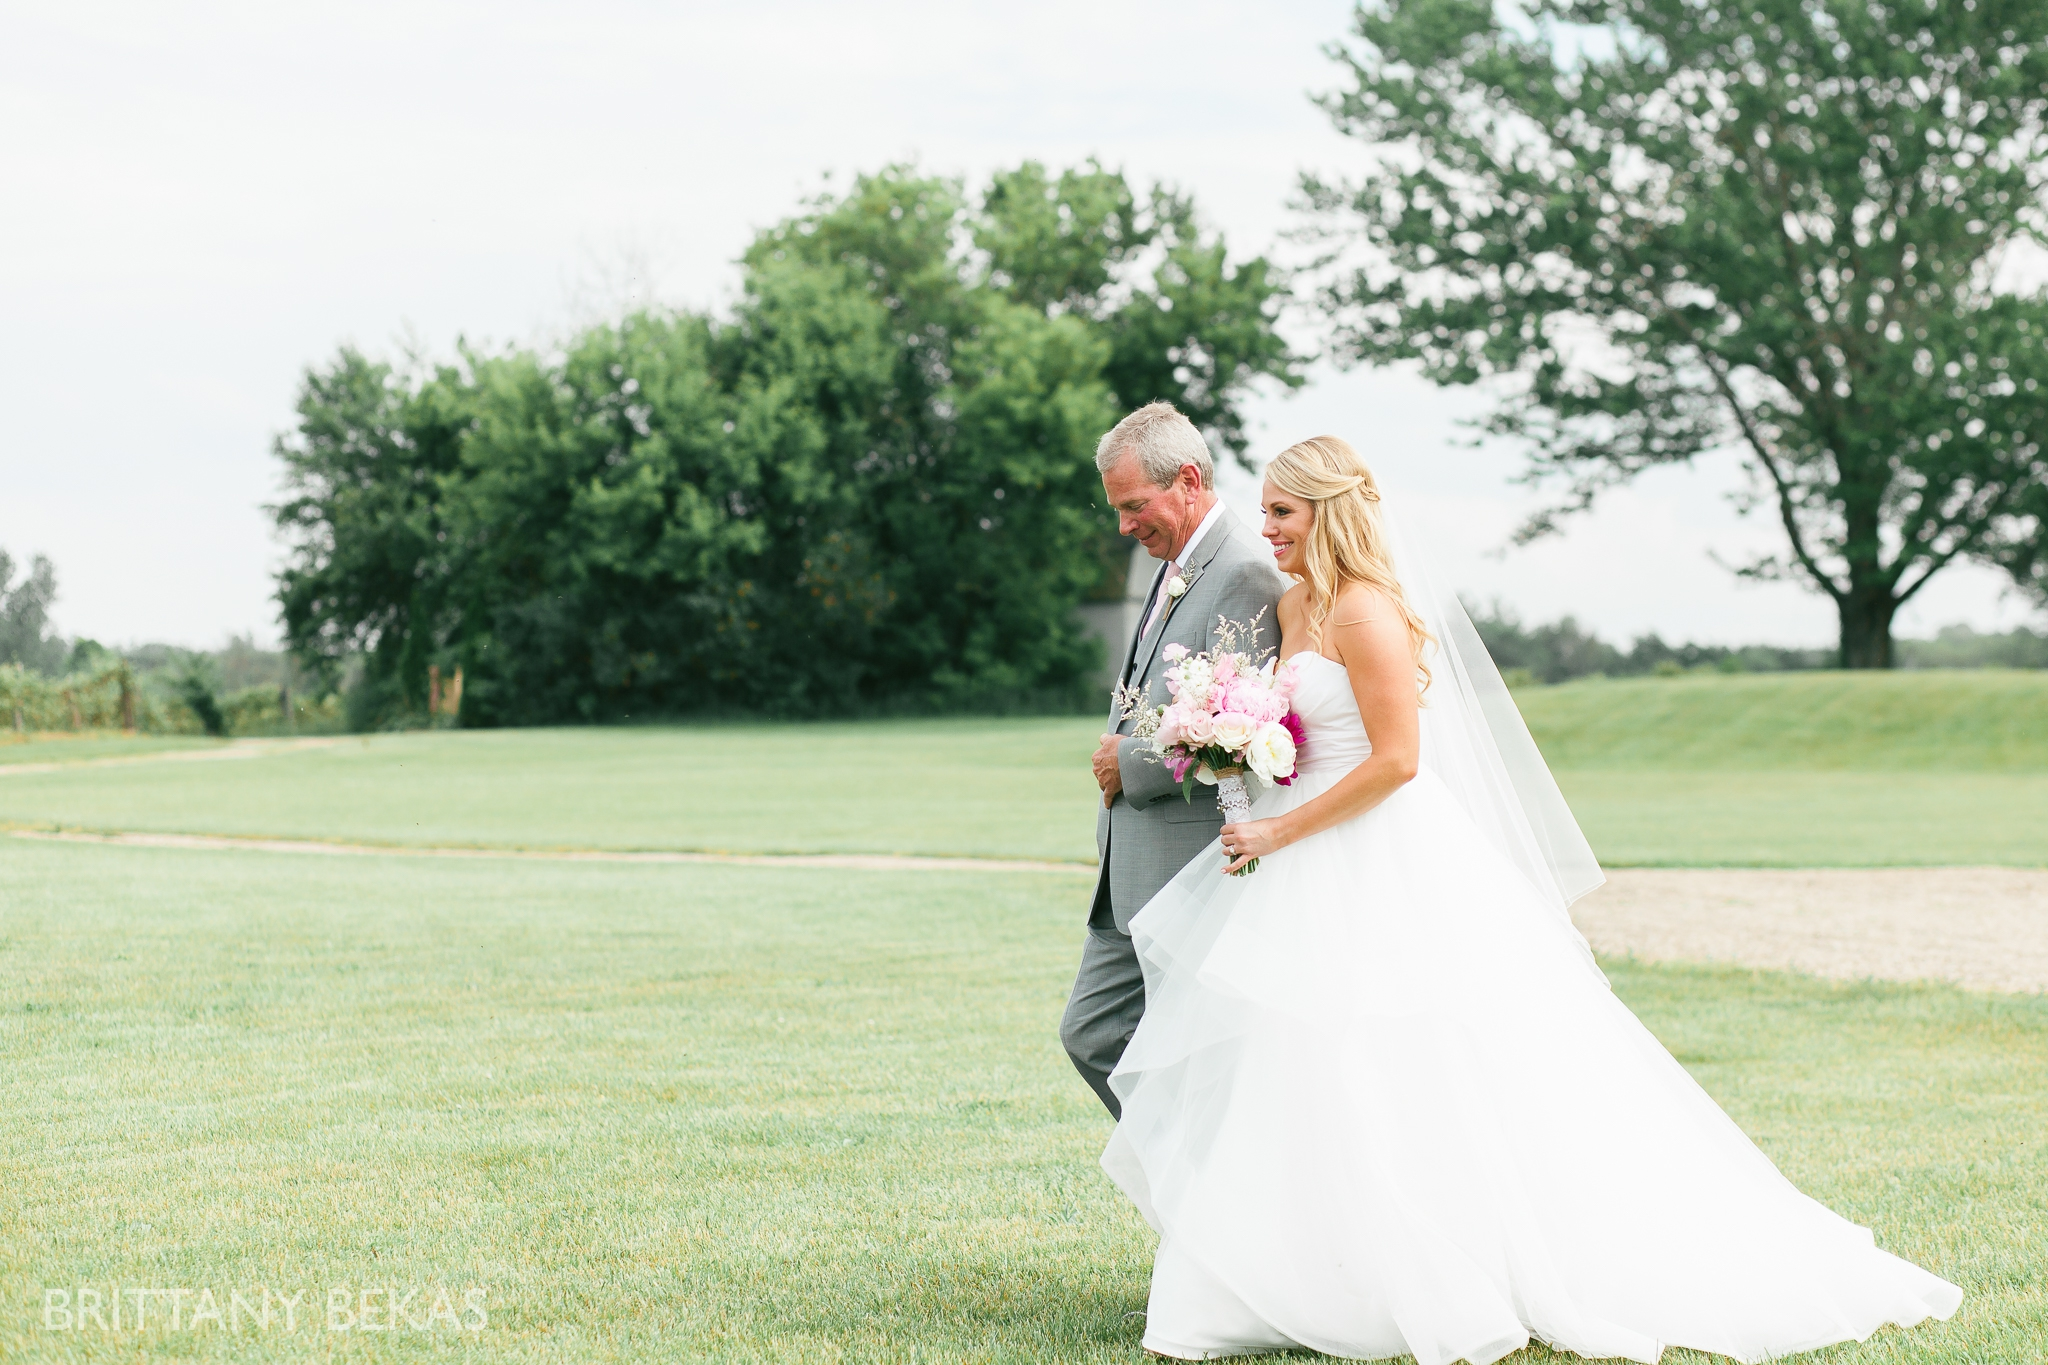 New Buffalo Wedding - Willow Harbor Vineyards Wedding Photos - Brittany Bekas Photography_0041